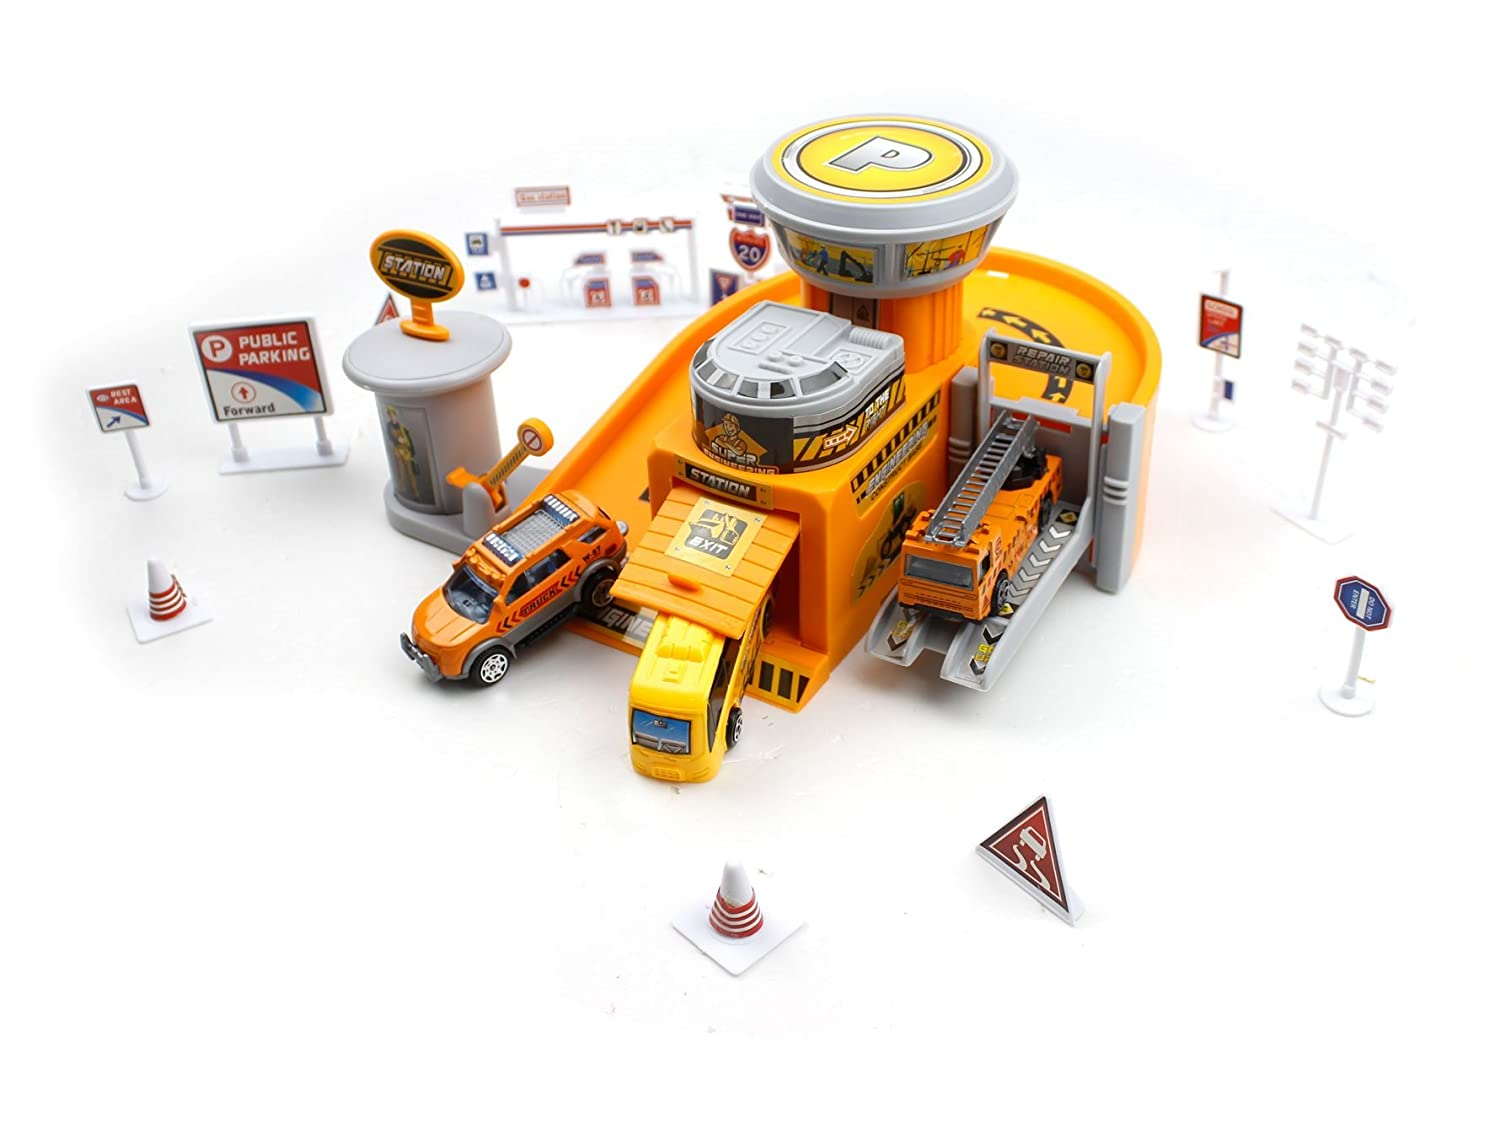 Little Treasures Utility repair mechanical shop play toy a fun engineering fix station with parking